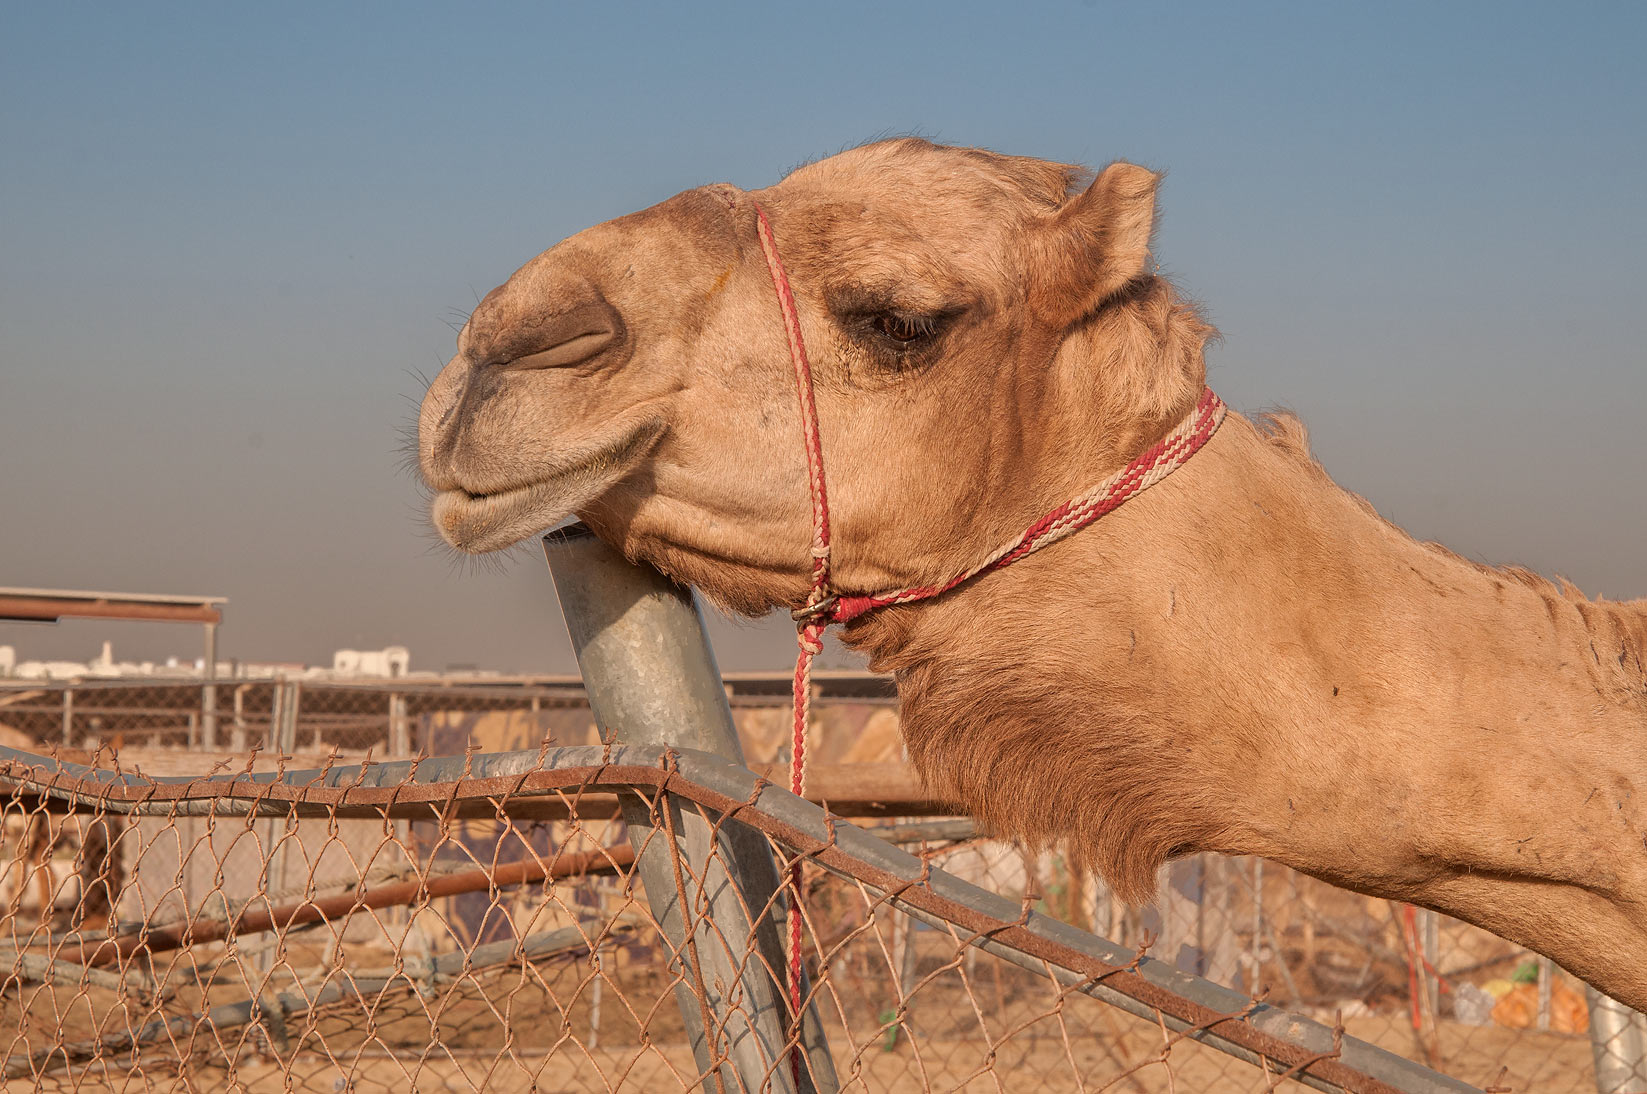 Camel with itching neck in livestock market, Abu Hamour area. Doha, Qatar